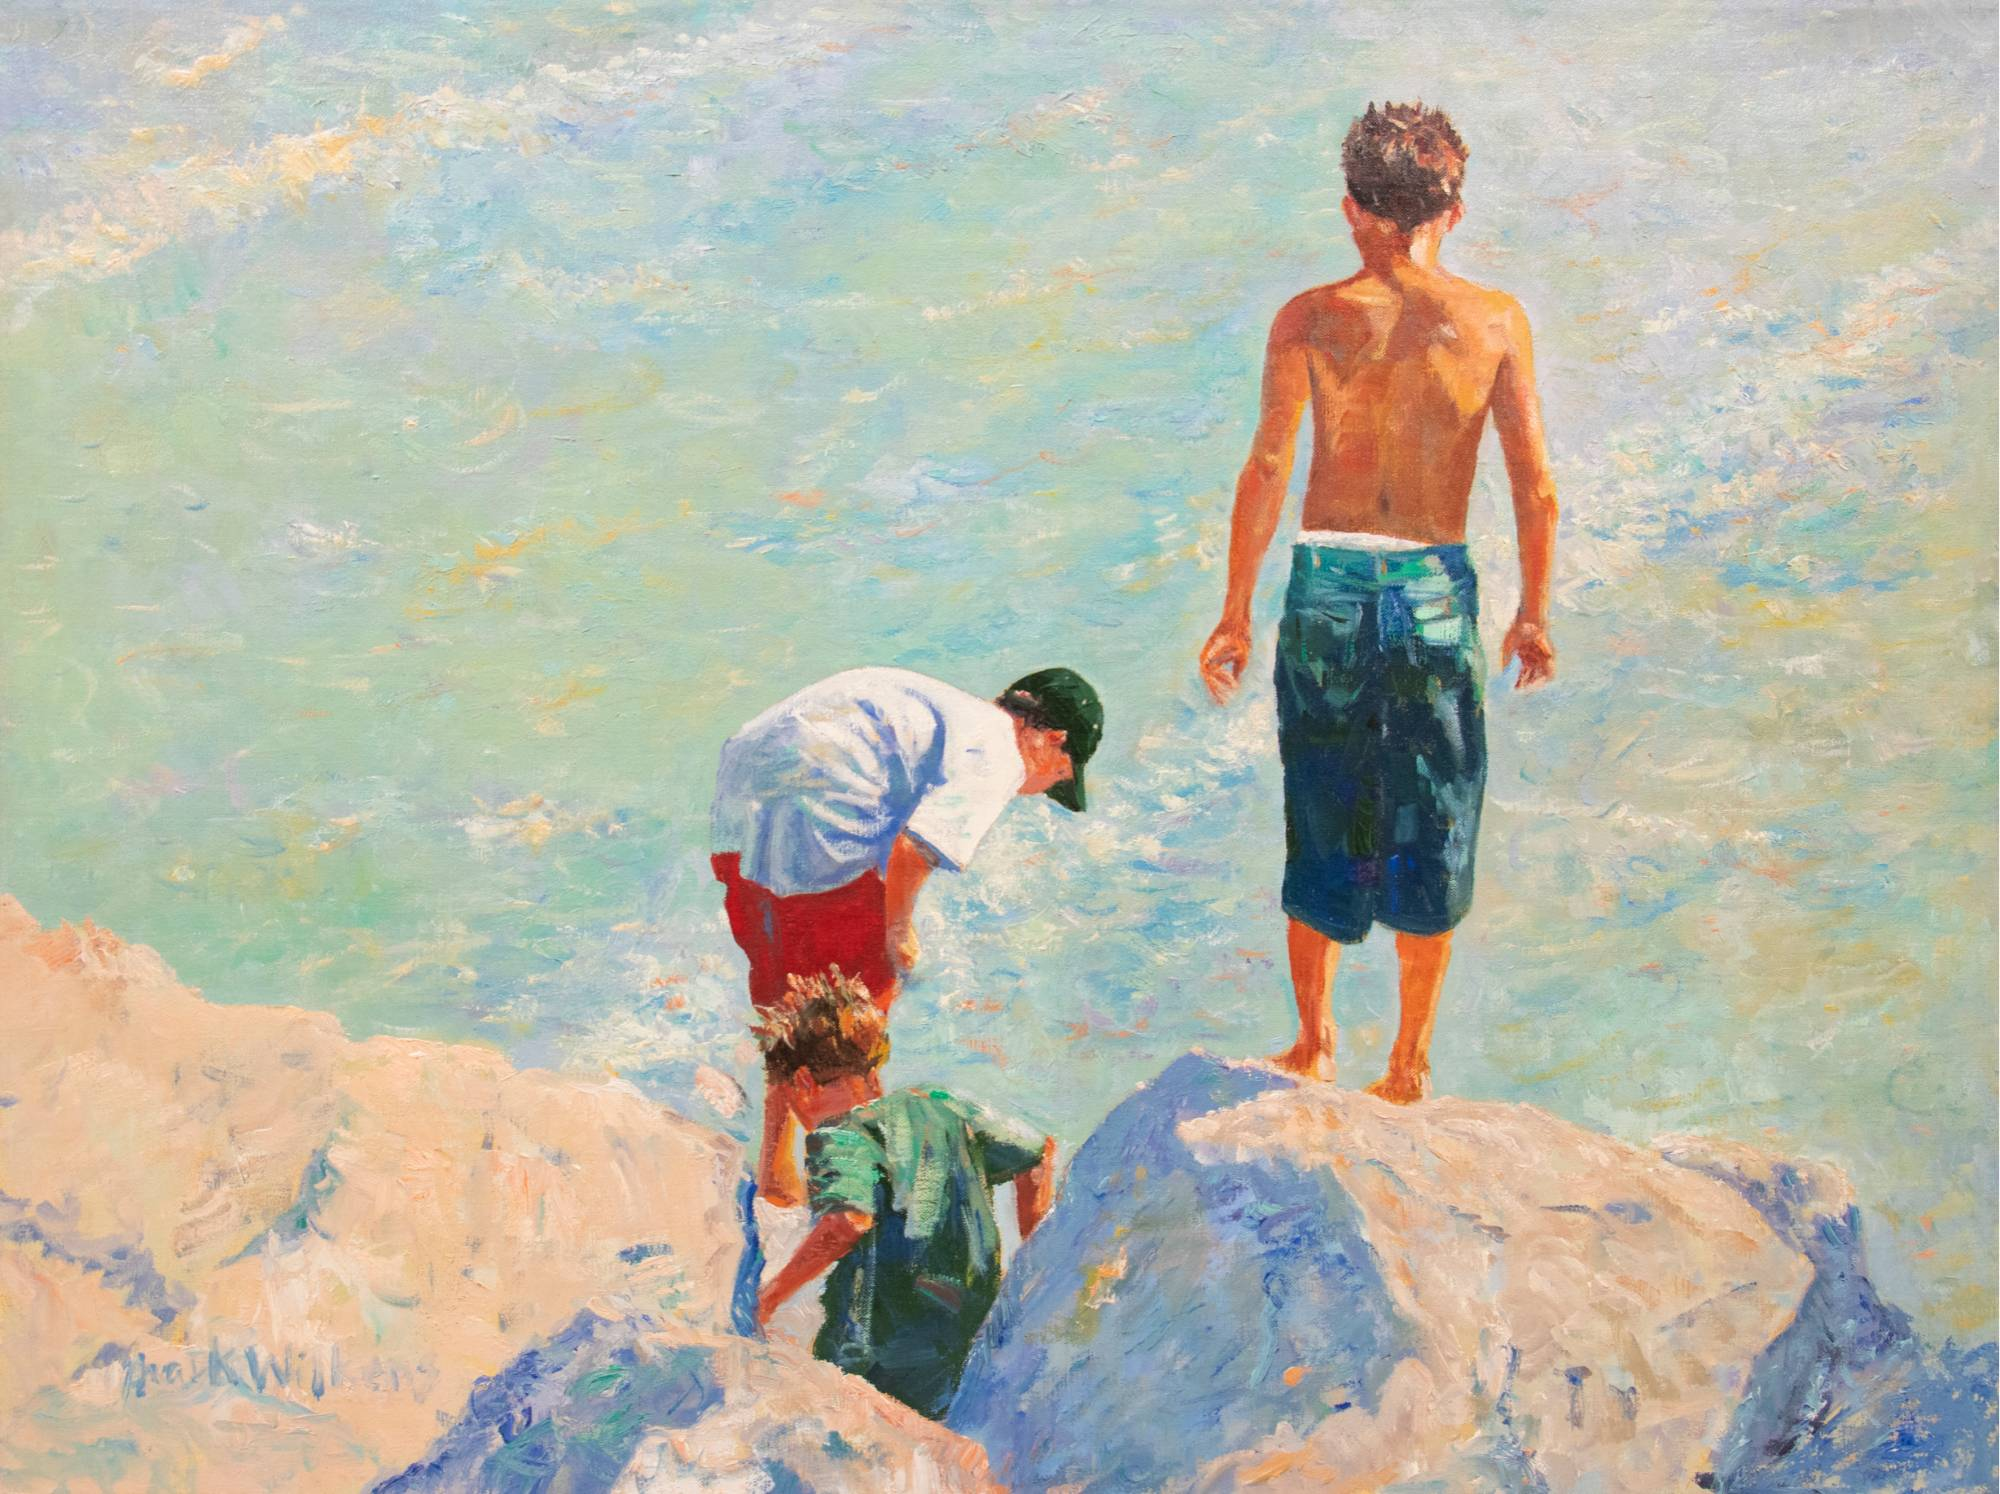 An art piece that features three young boys standing on rocks overlooking the water.